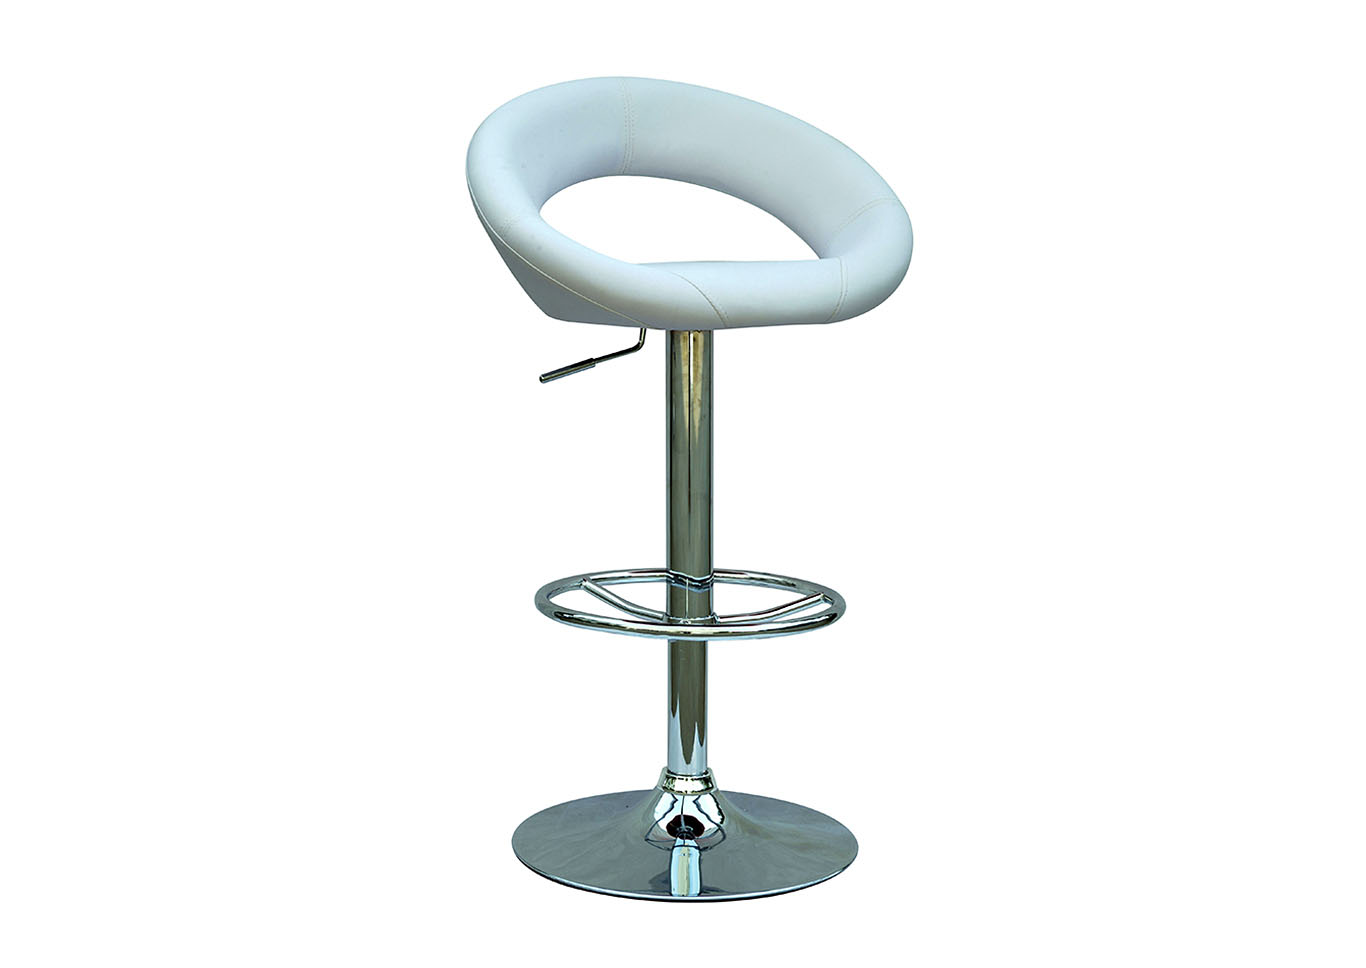 White Pneumatic Adjustable Swivel Stool,Chintaly Imports